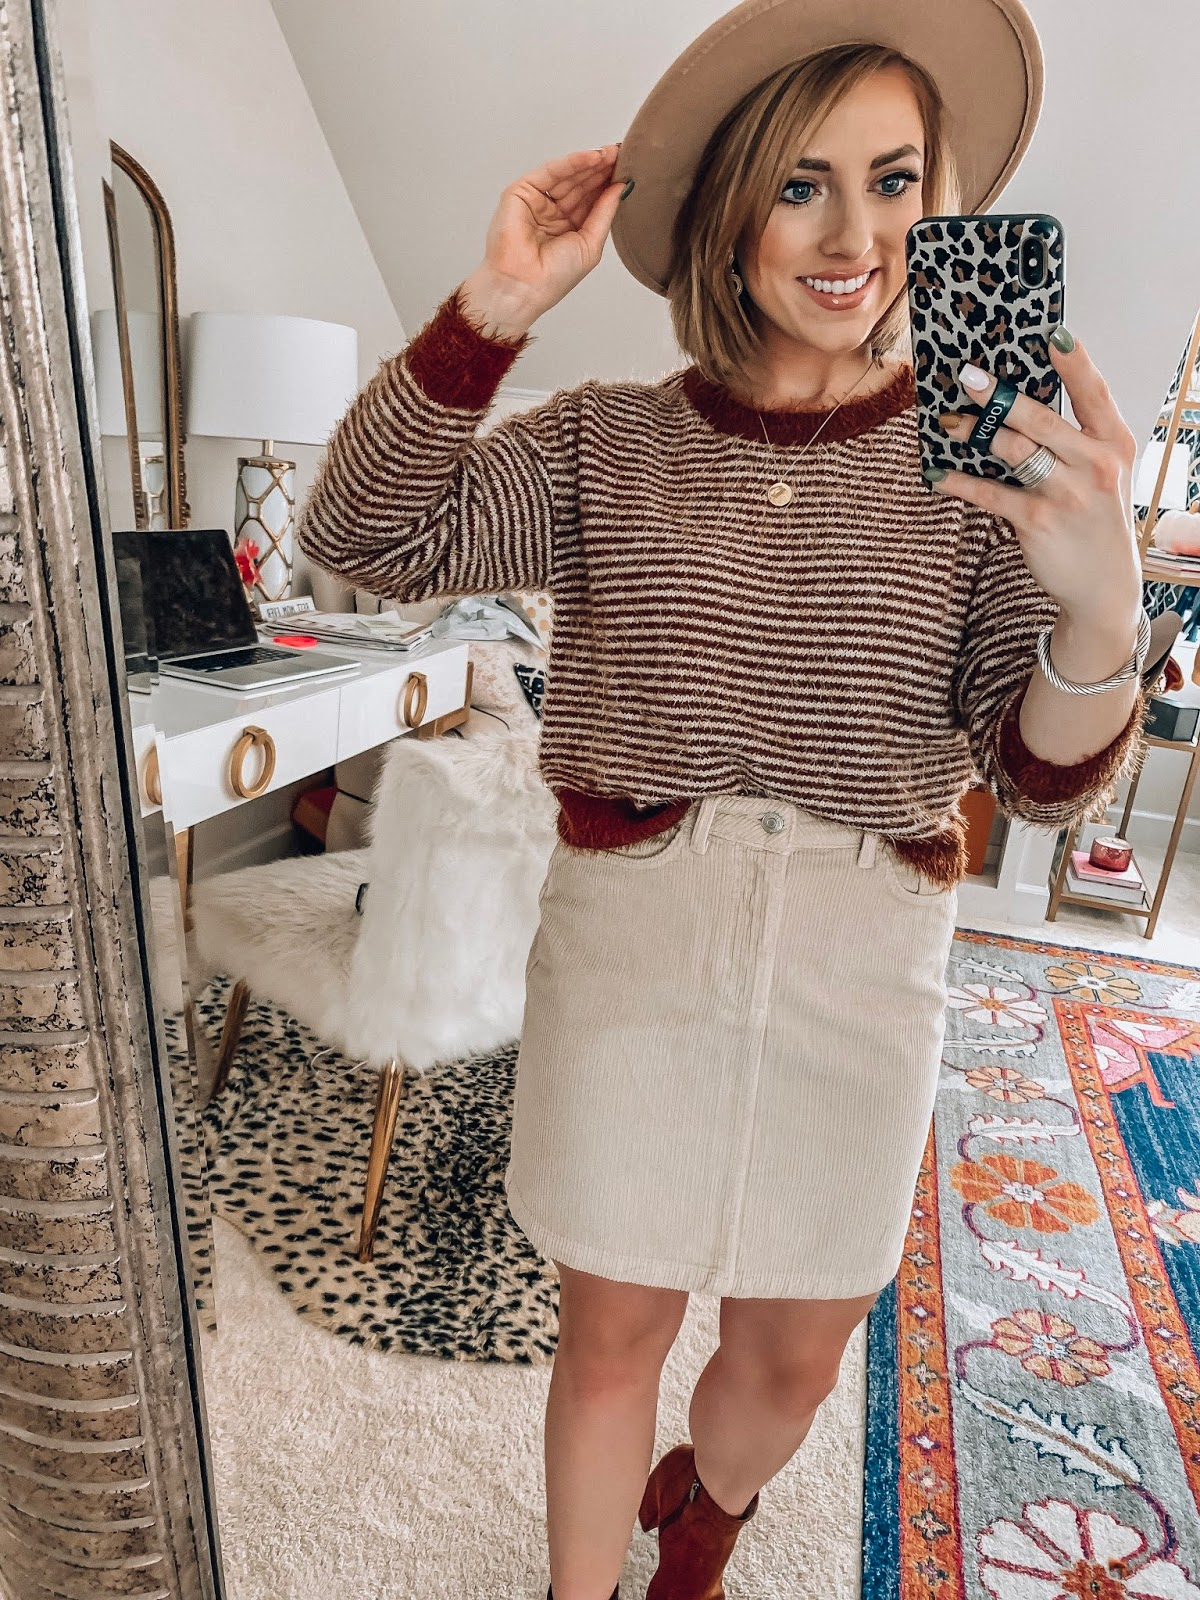 ASOS New Fall Arrivals - $40 Stripe Sweater + $32 Cord Skirt - Something Delightful Blog #fallstyle #affordablefashion